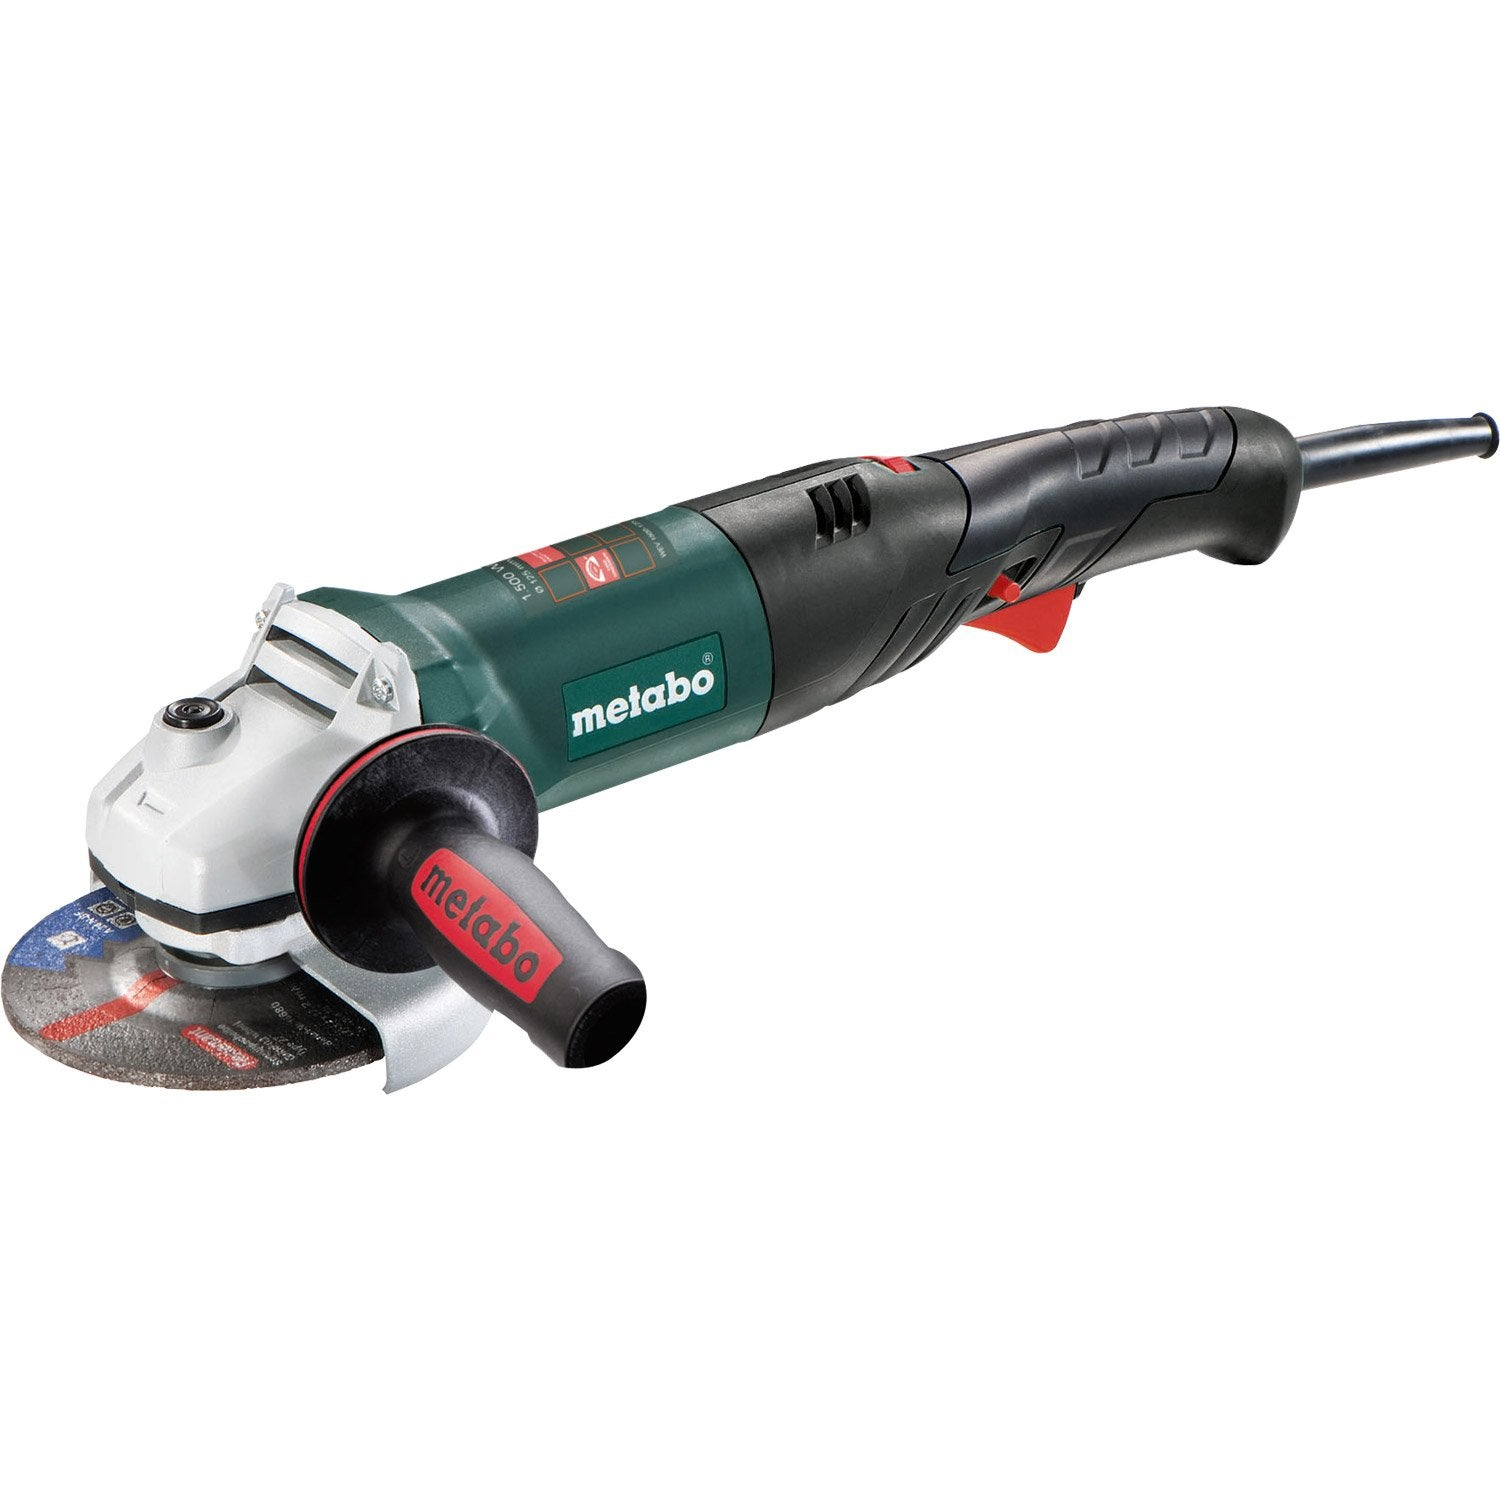 meuleuse d 39 angle filaire metabo wev 1500 125 rt 1500 w leroy merlin